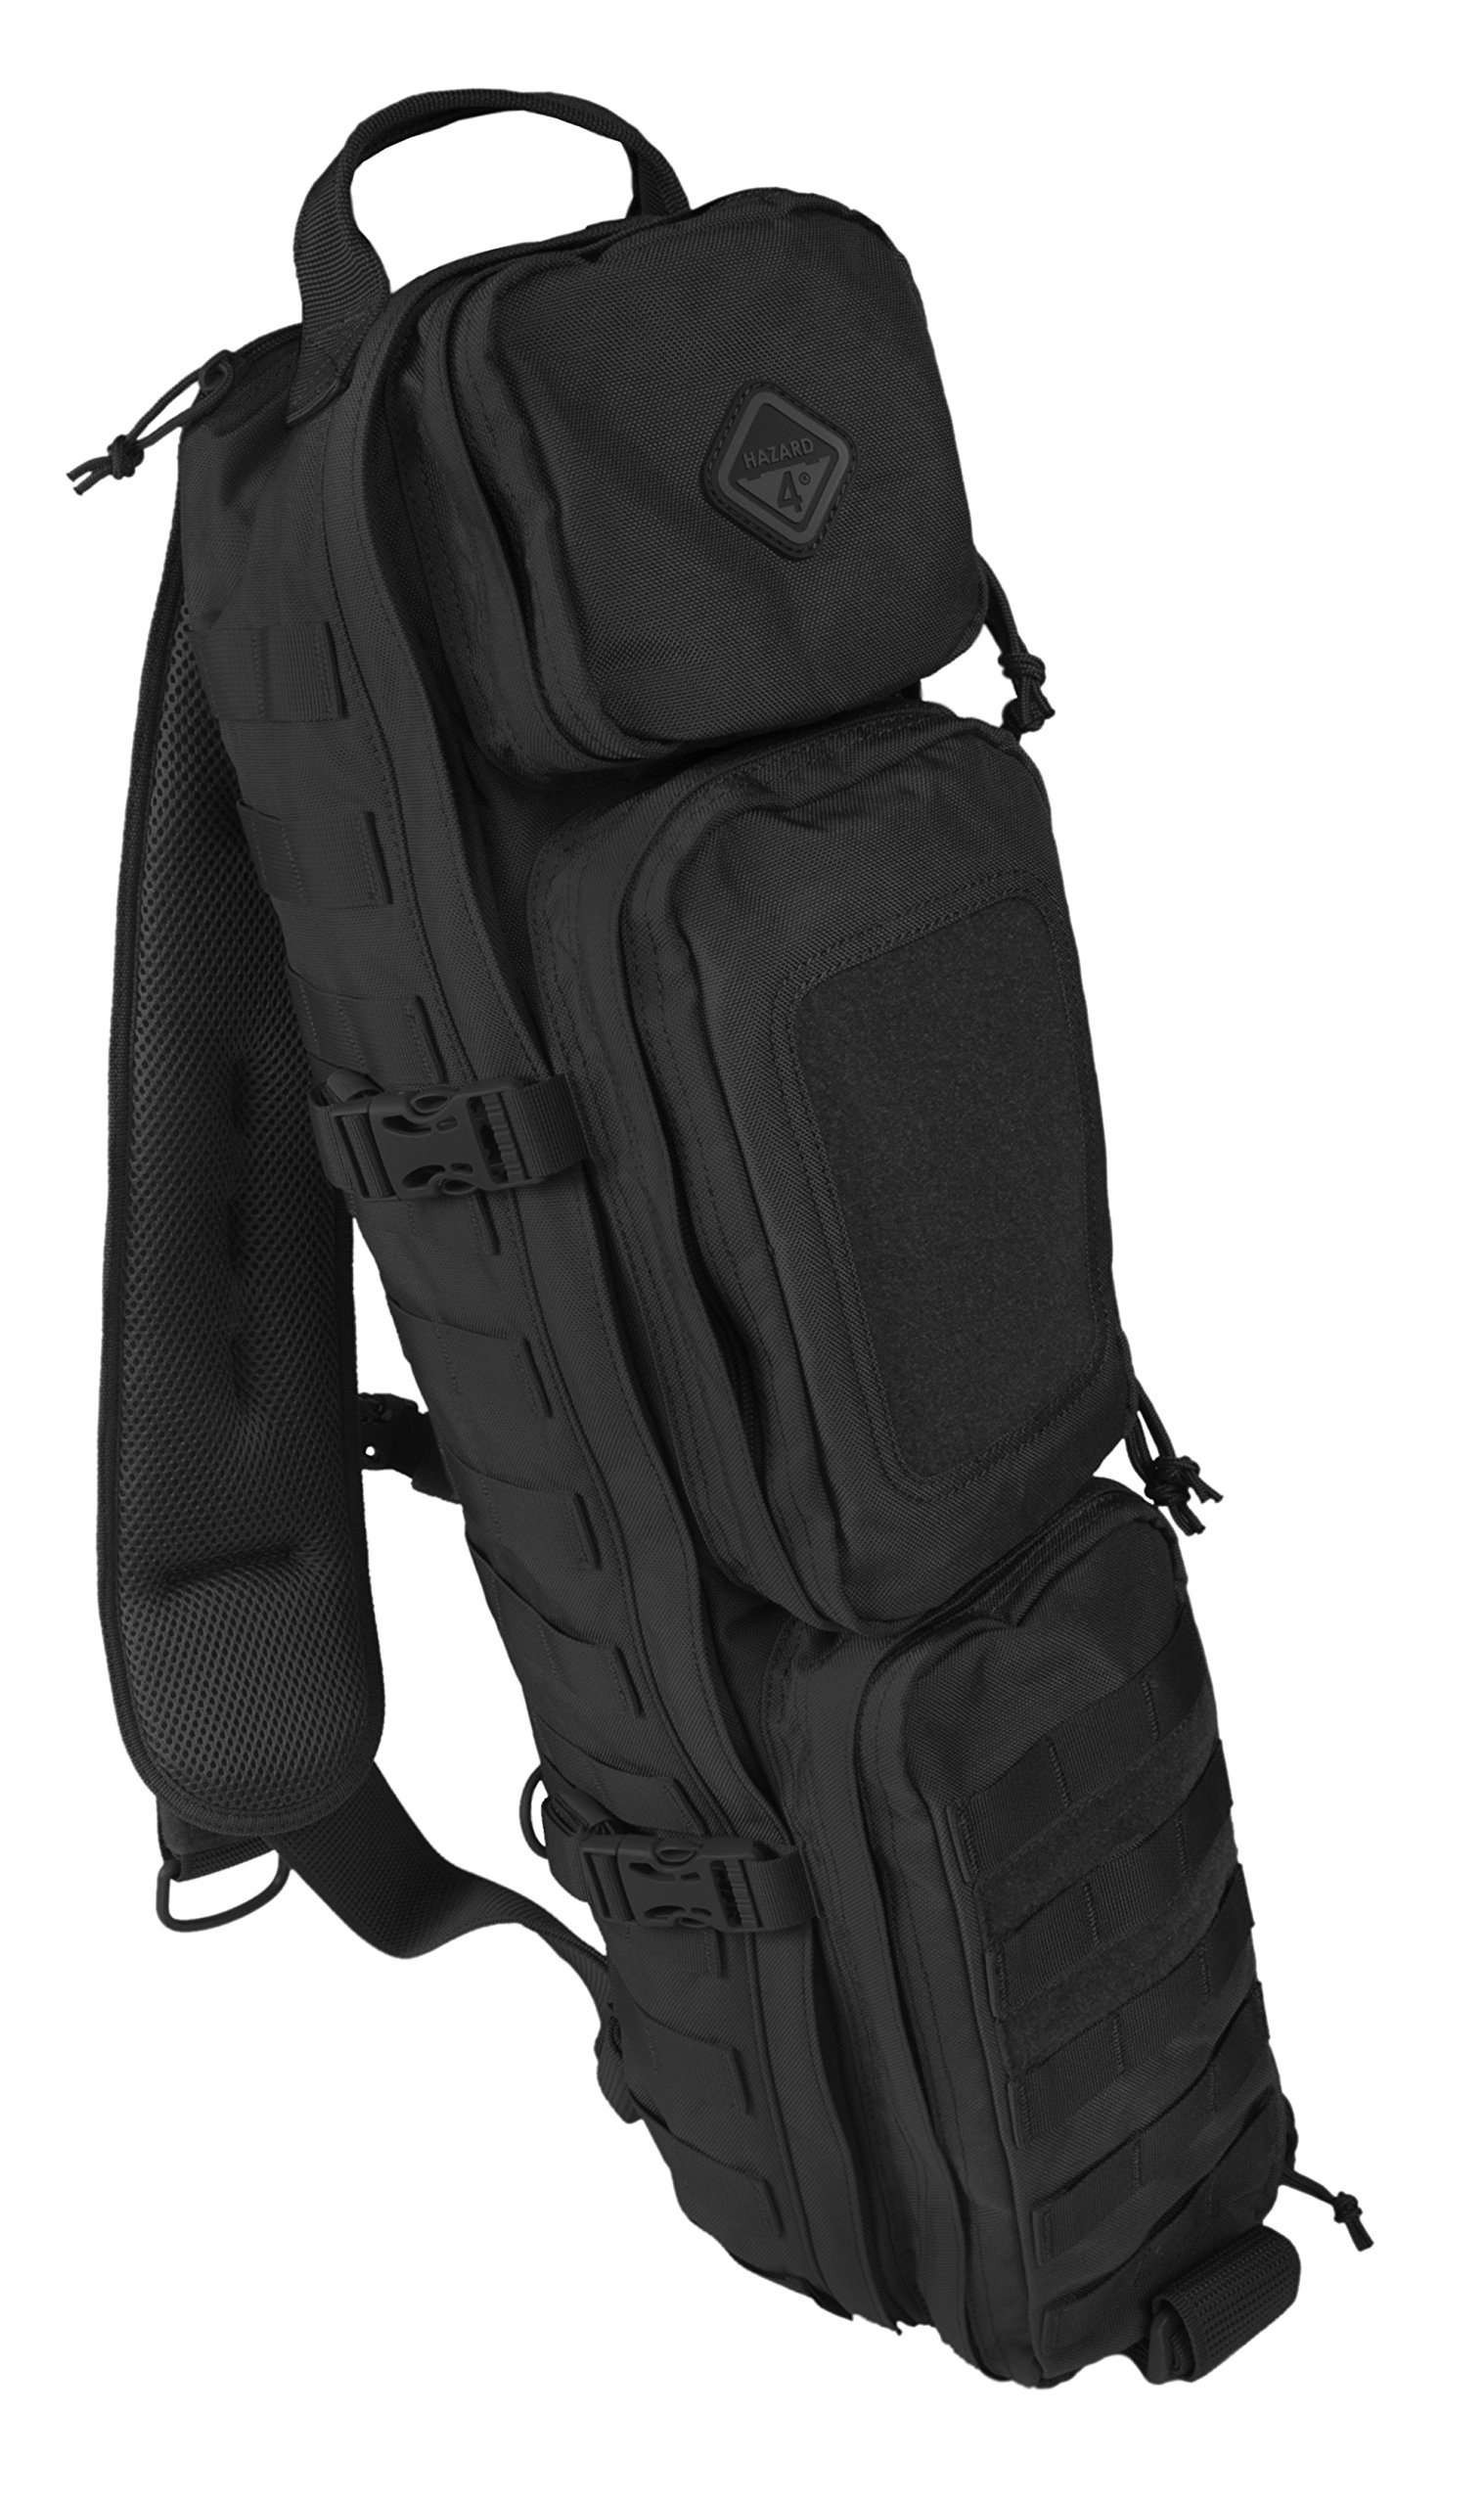 Hazard 4 Evac TakeDown Carbine Sling Pack, Black